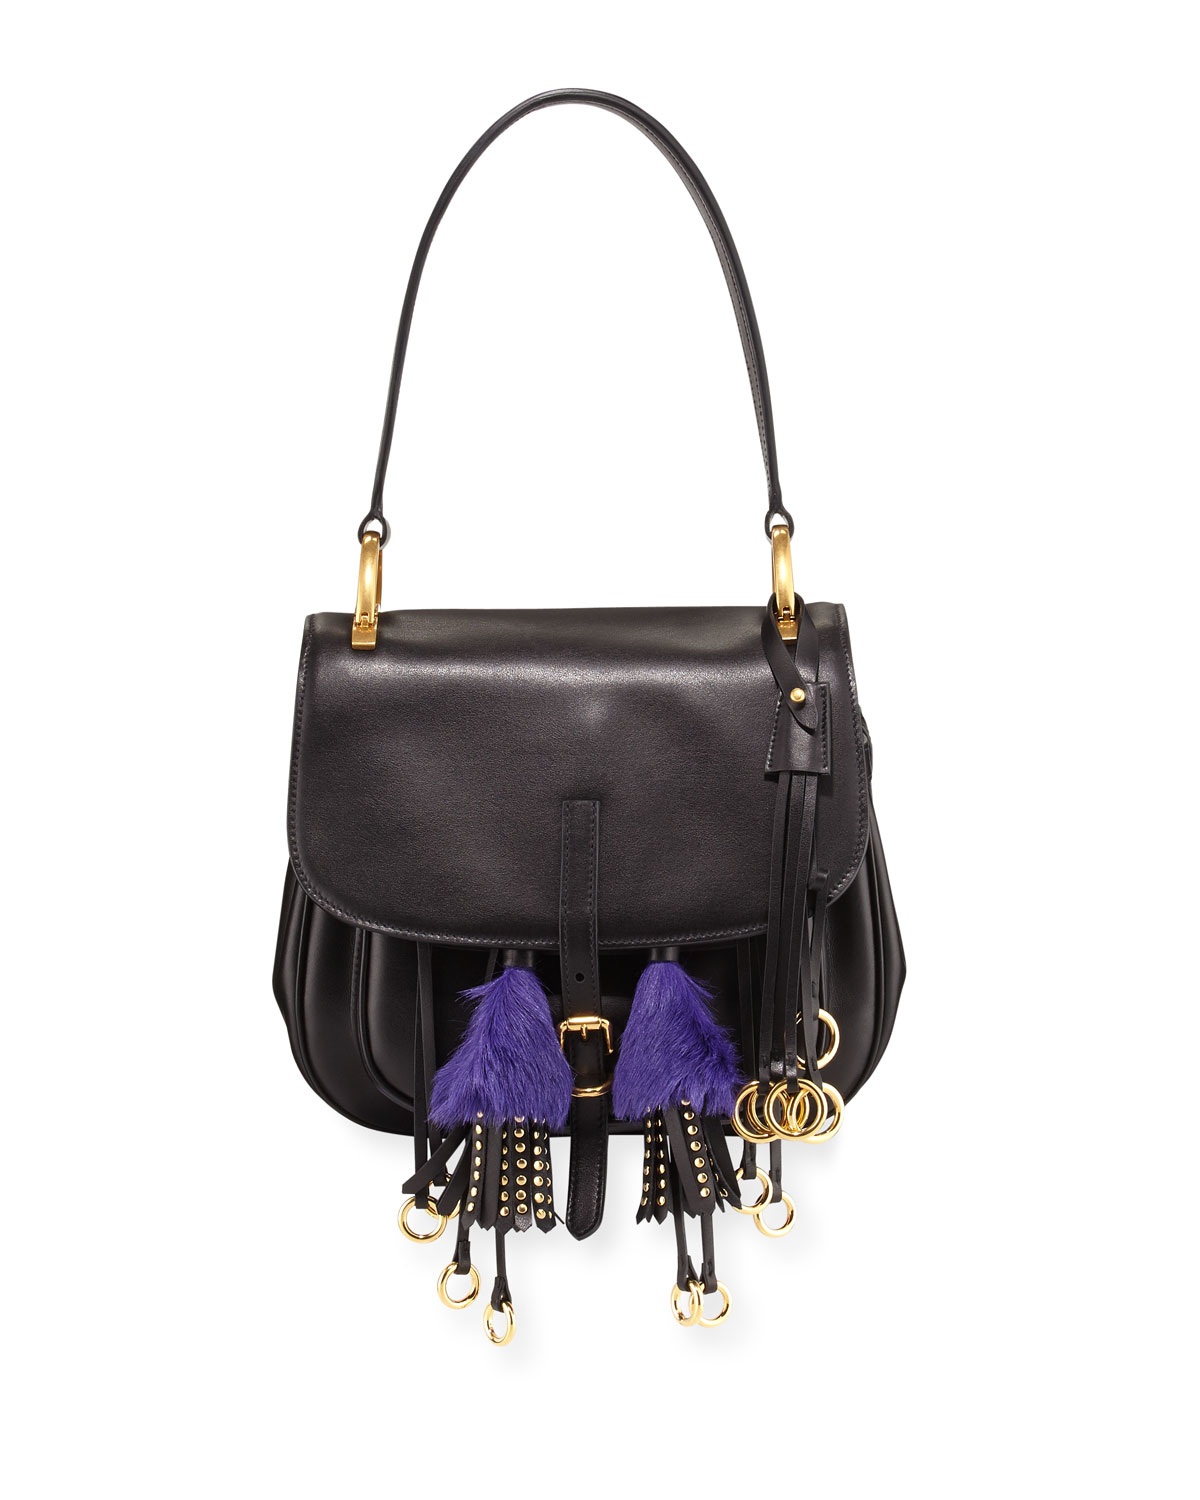 6e4582388149 Prada Corsaire Calf Leather Fringe Shoulder Bag | Neiman Marcus